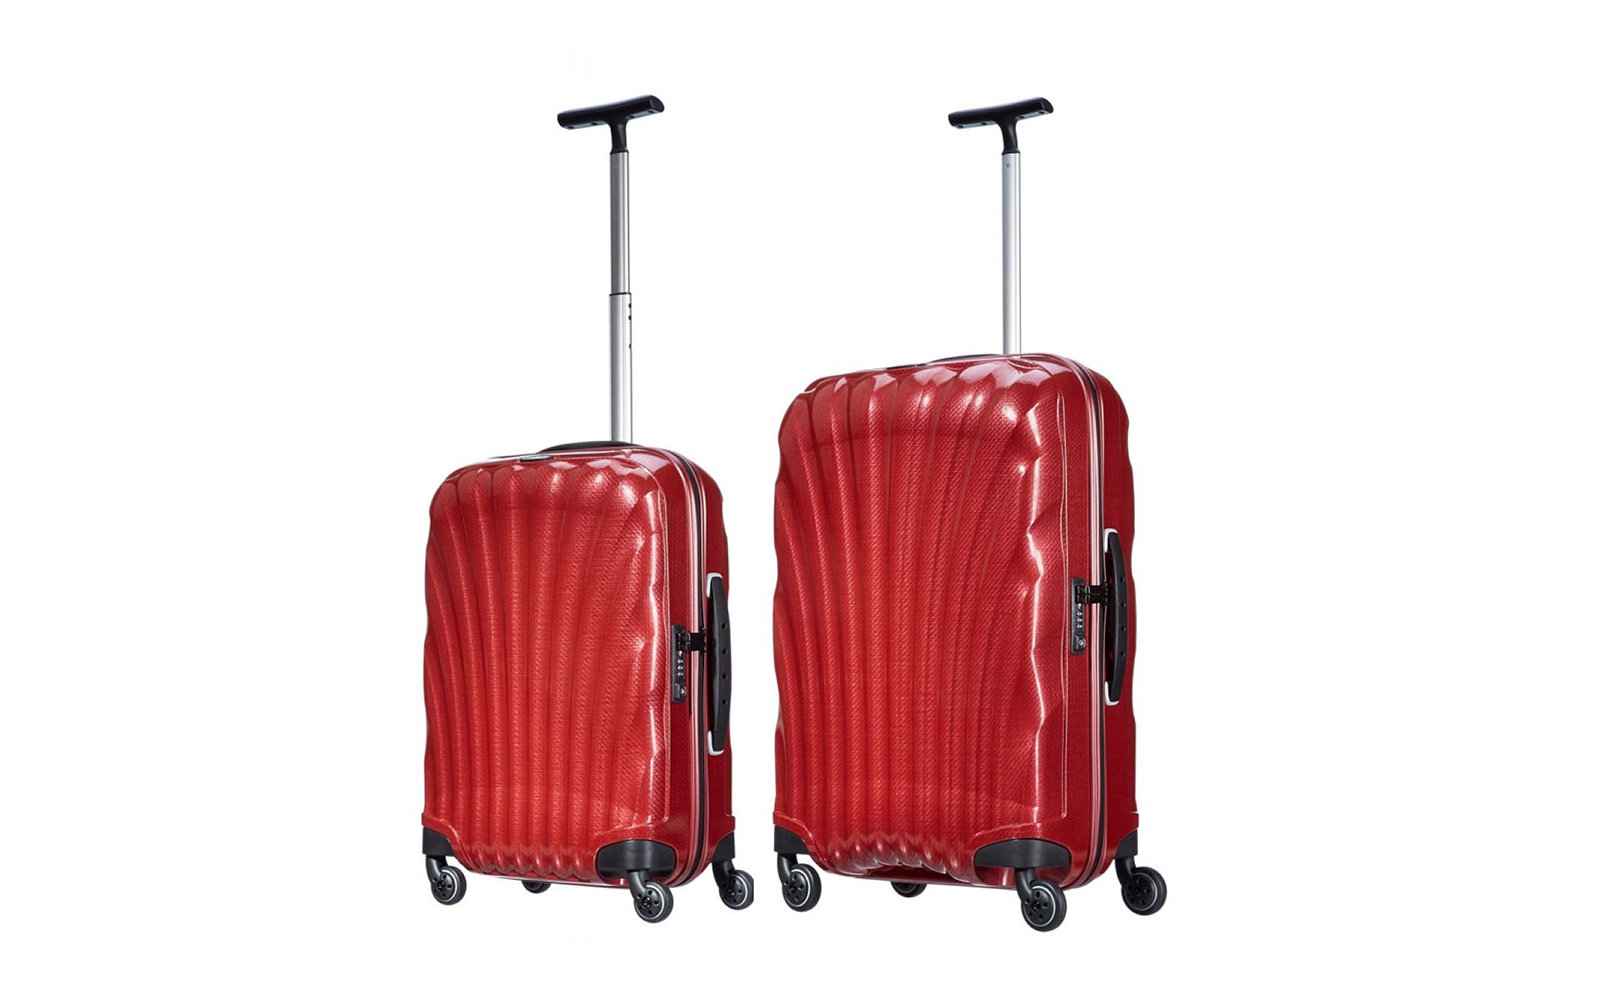 eb411011f766 9 Stylish Luggage Sets That Look Much More Expensive Than They Are ...